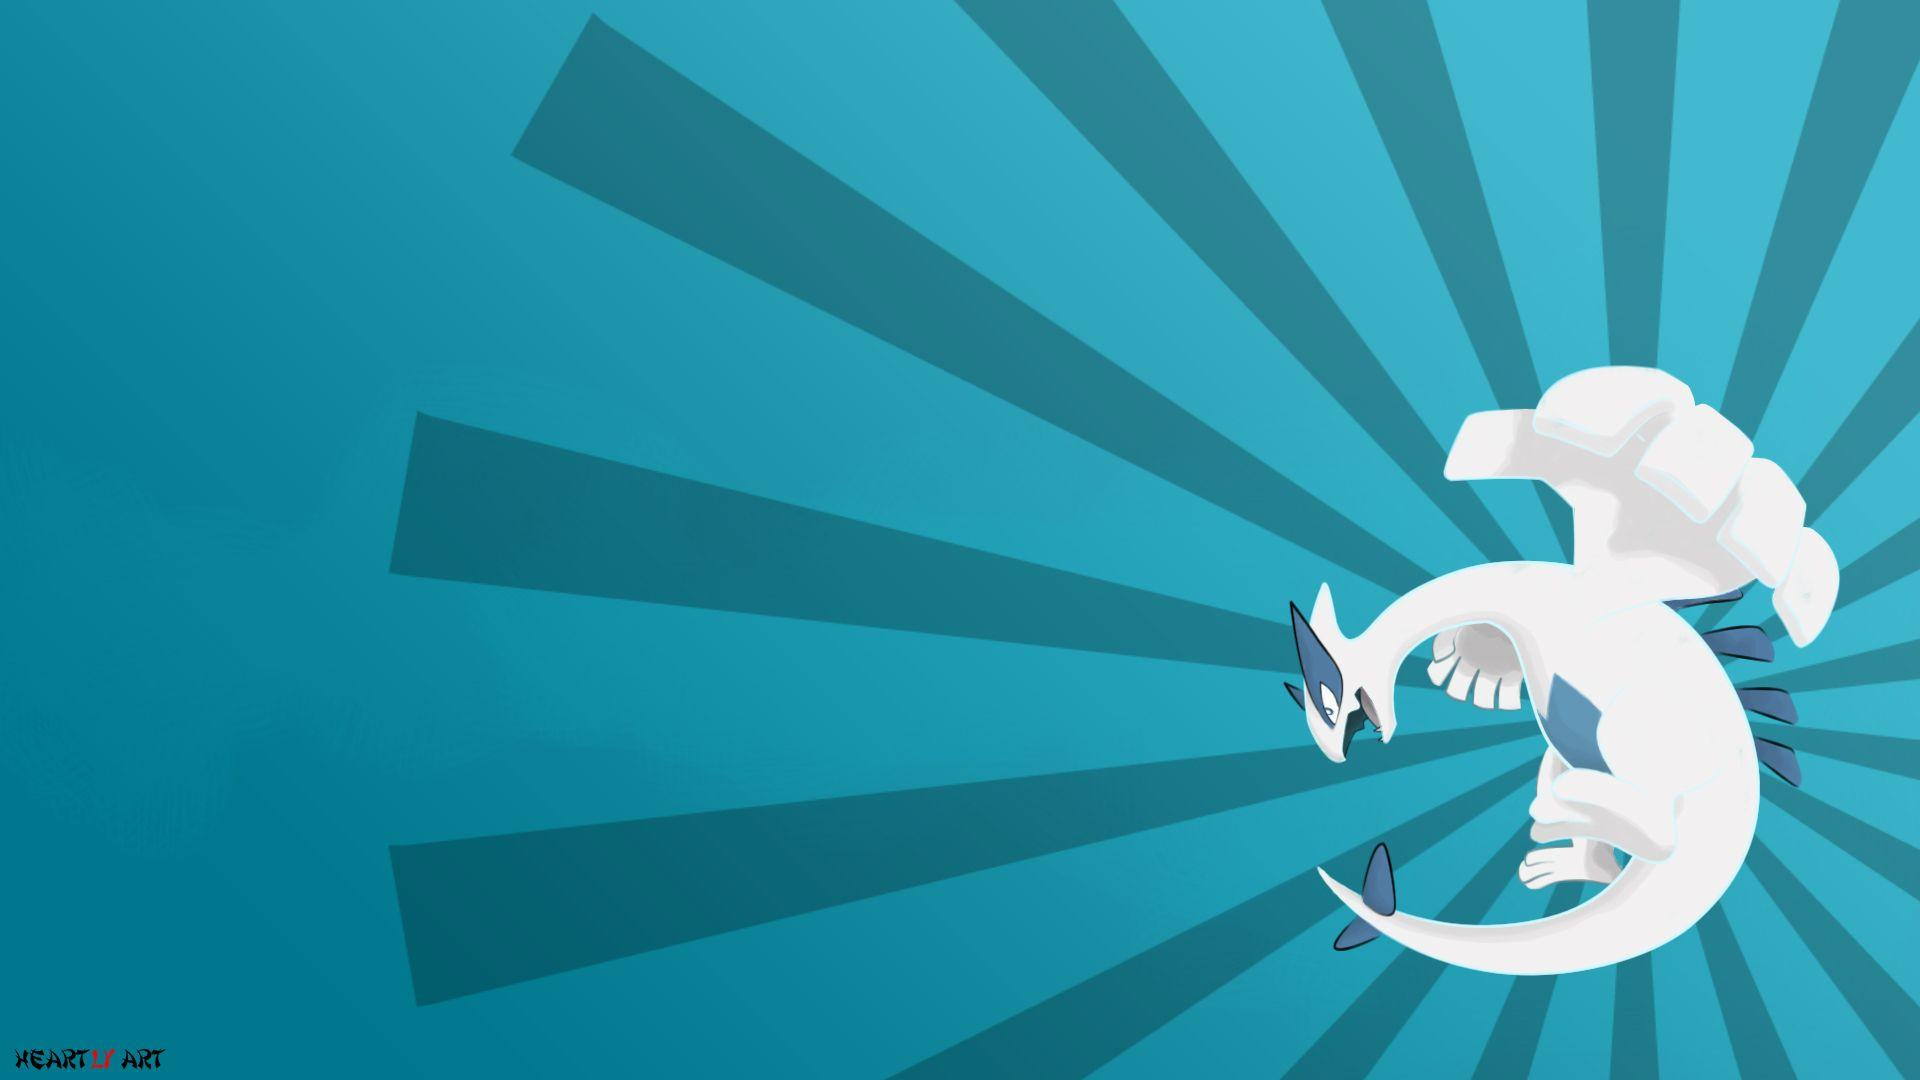 Pokemon Lugia Wallpapers - Wallpaper Cave